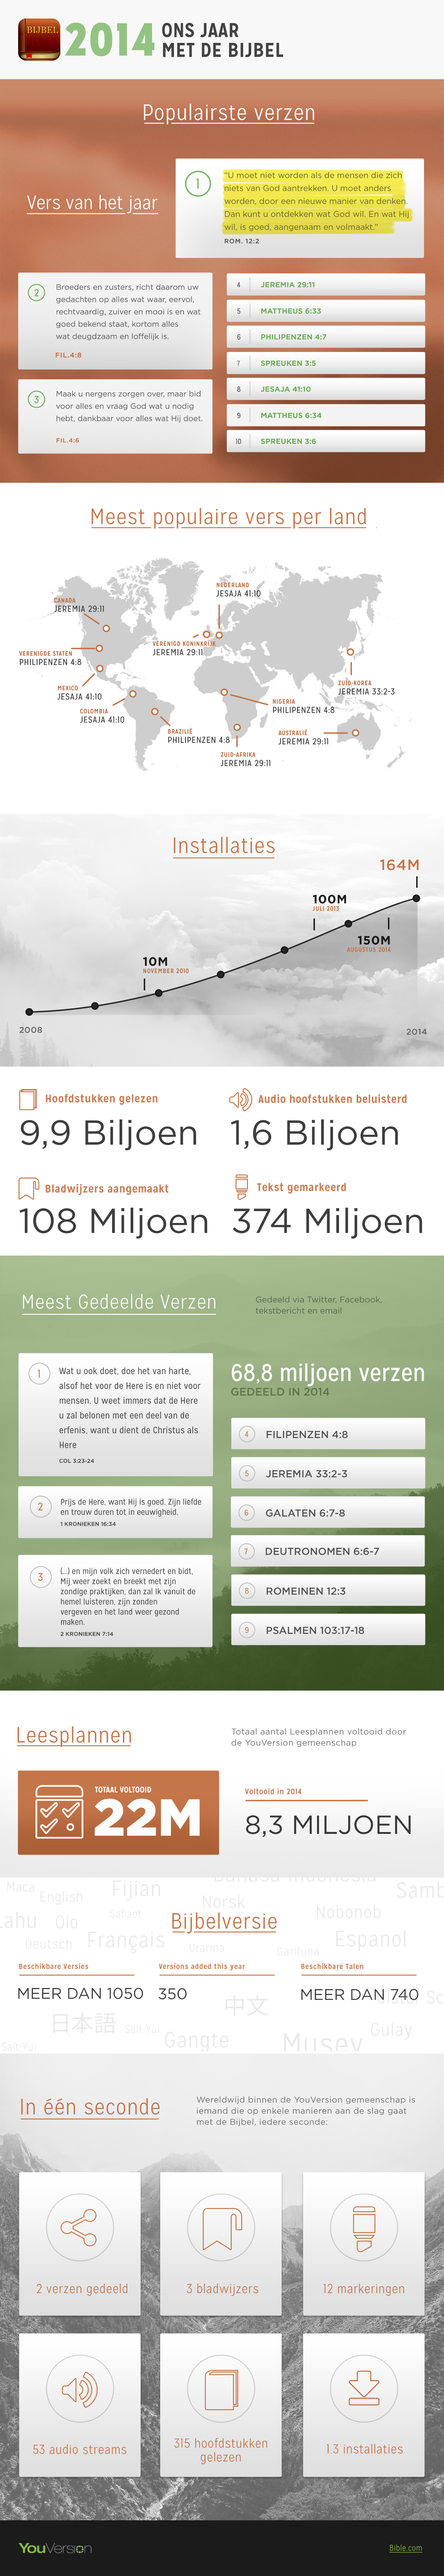 2014-Infographic-Dutch